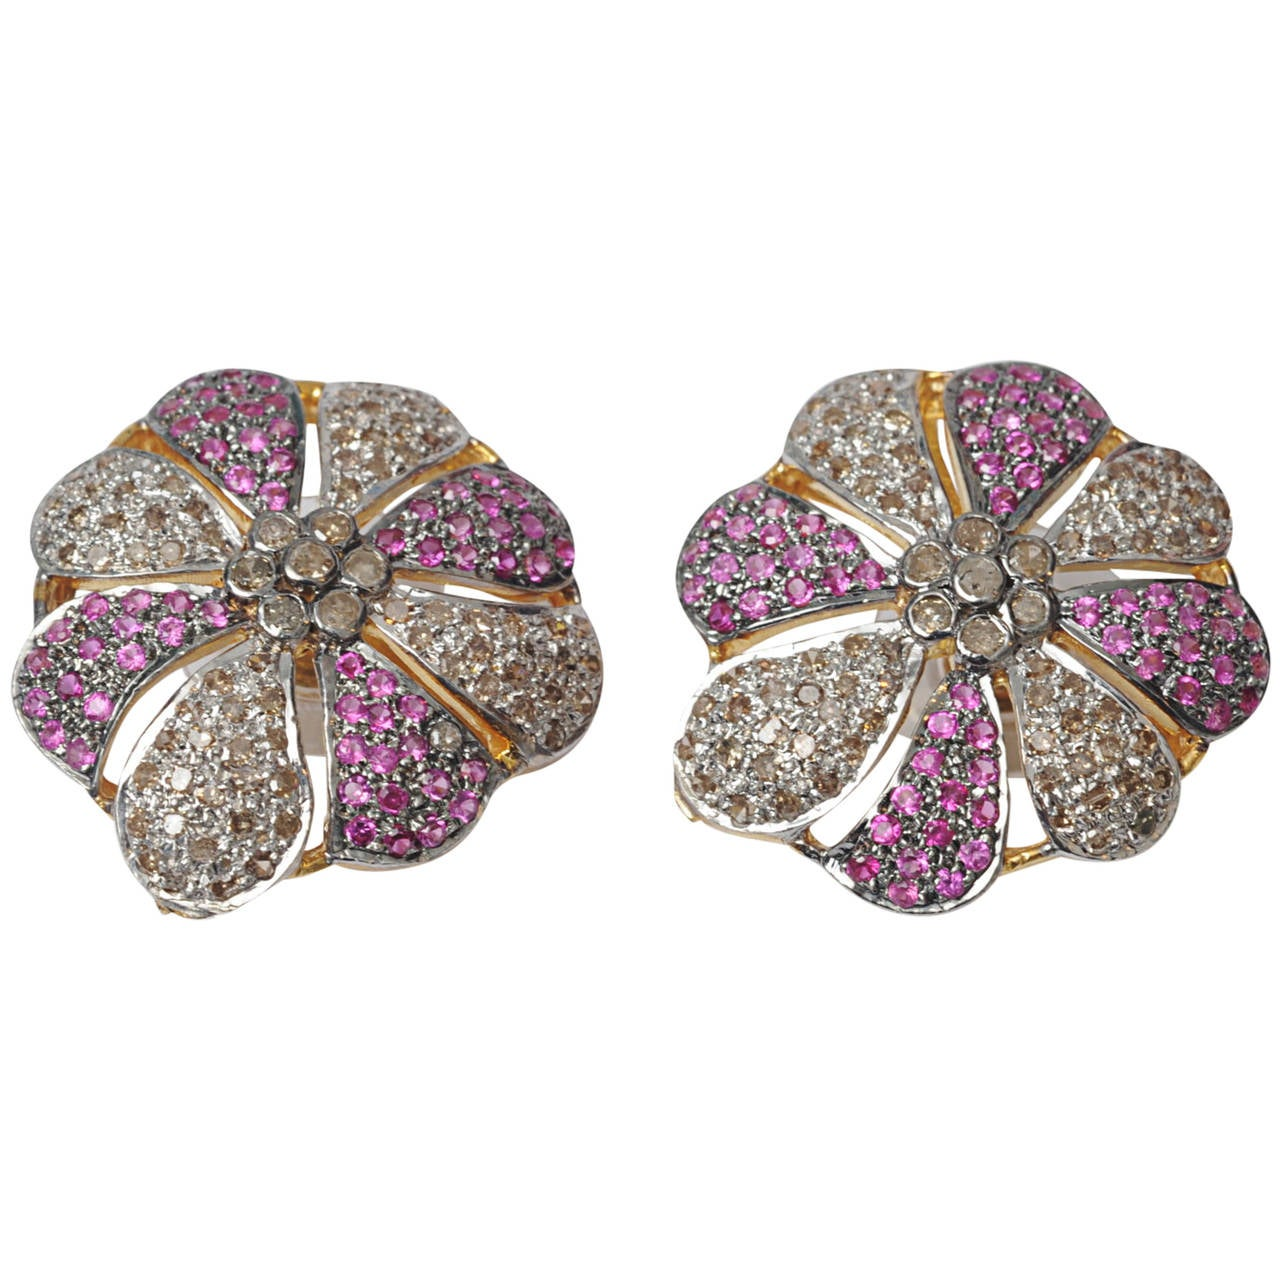 Pair of Pave Set Diamond and Ruby Flower Post Earrings